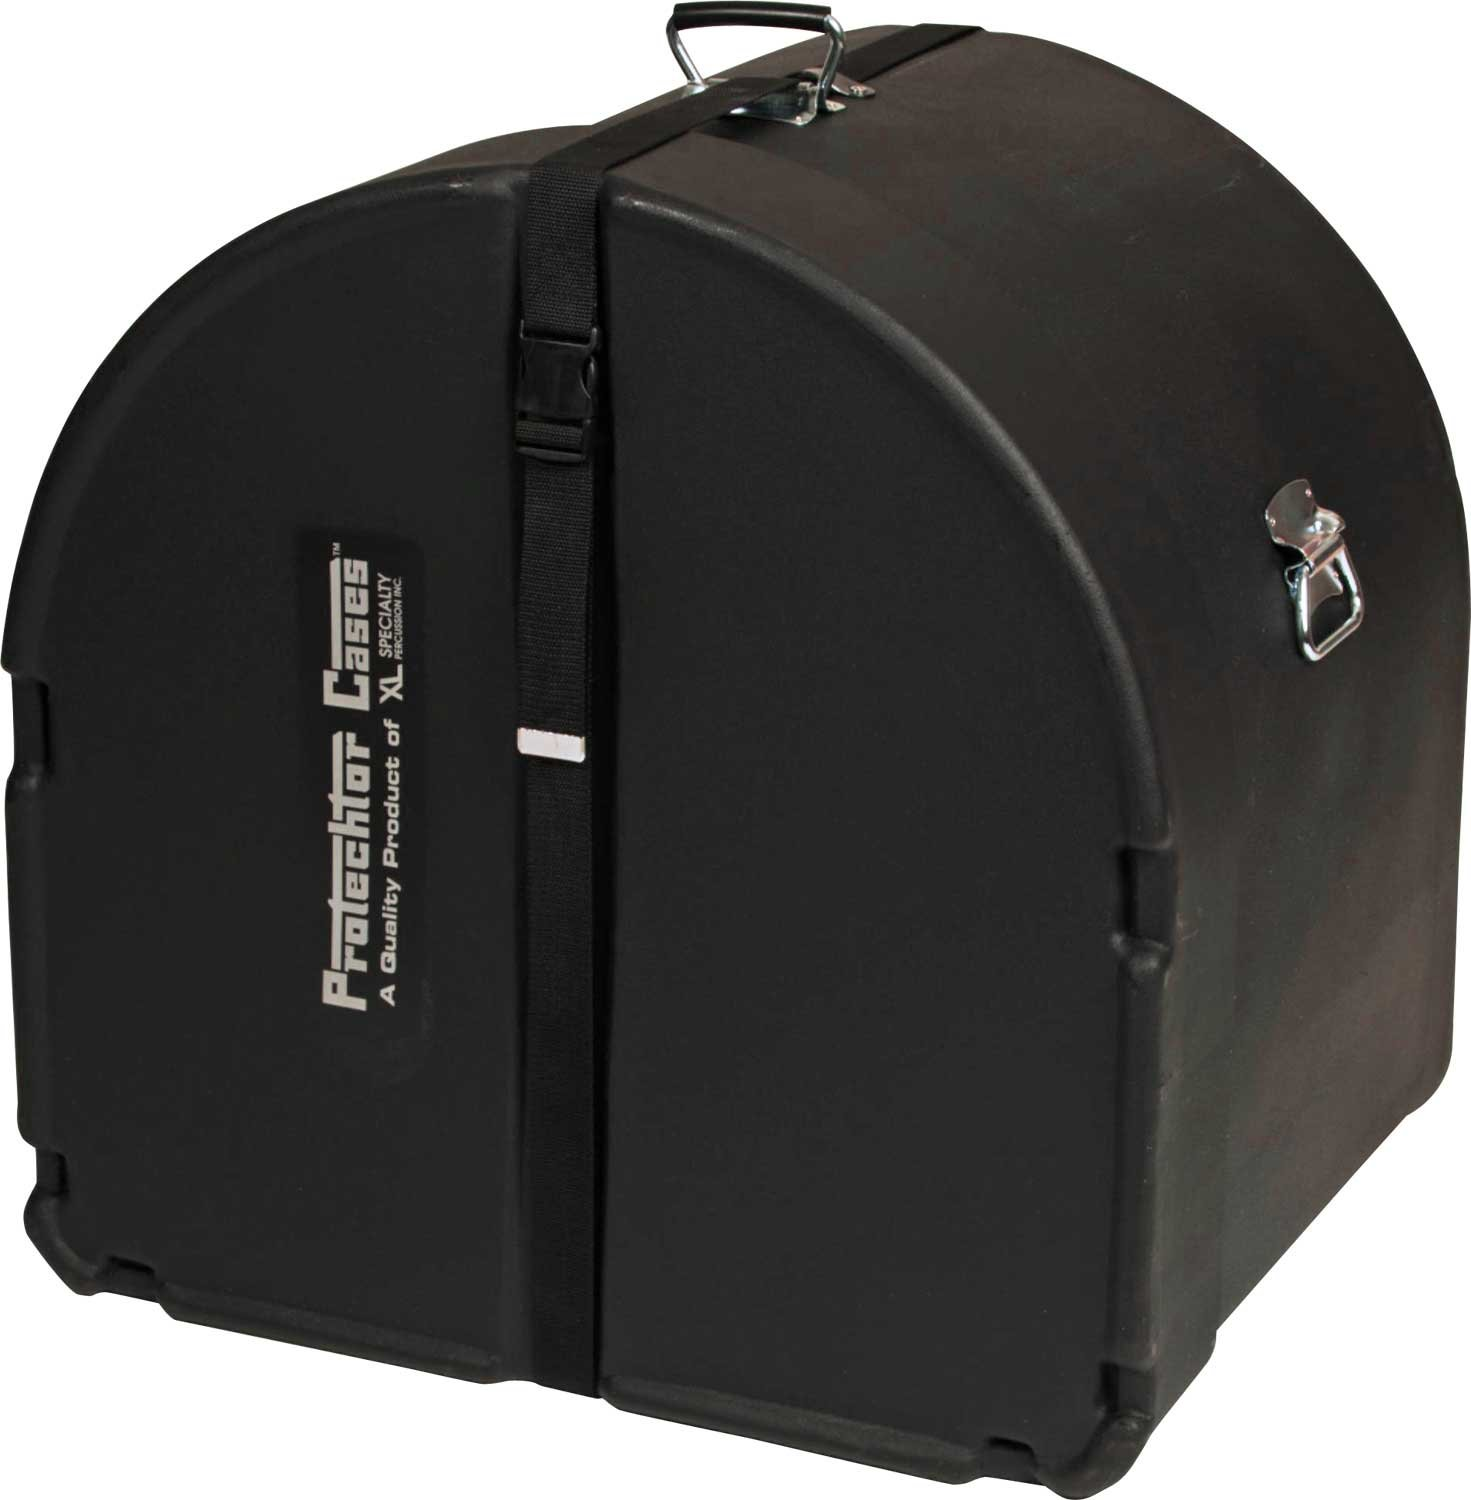 "Gator Cases GP-PC2214MBD 14""x22"" Classic Series Marching Bass Drum Case by Protechtor GP-PC2214MBD"